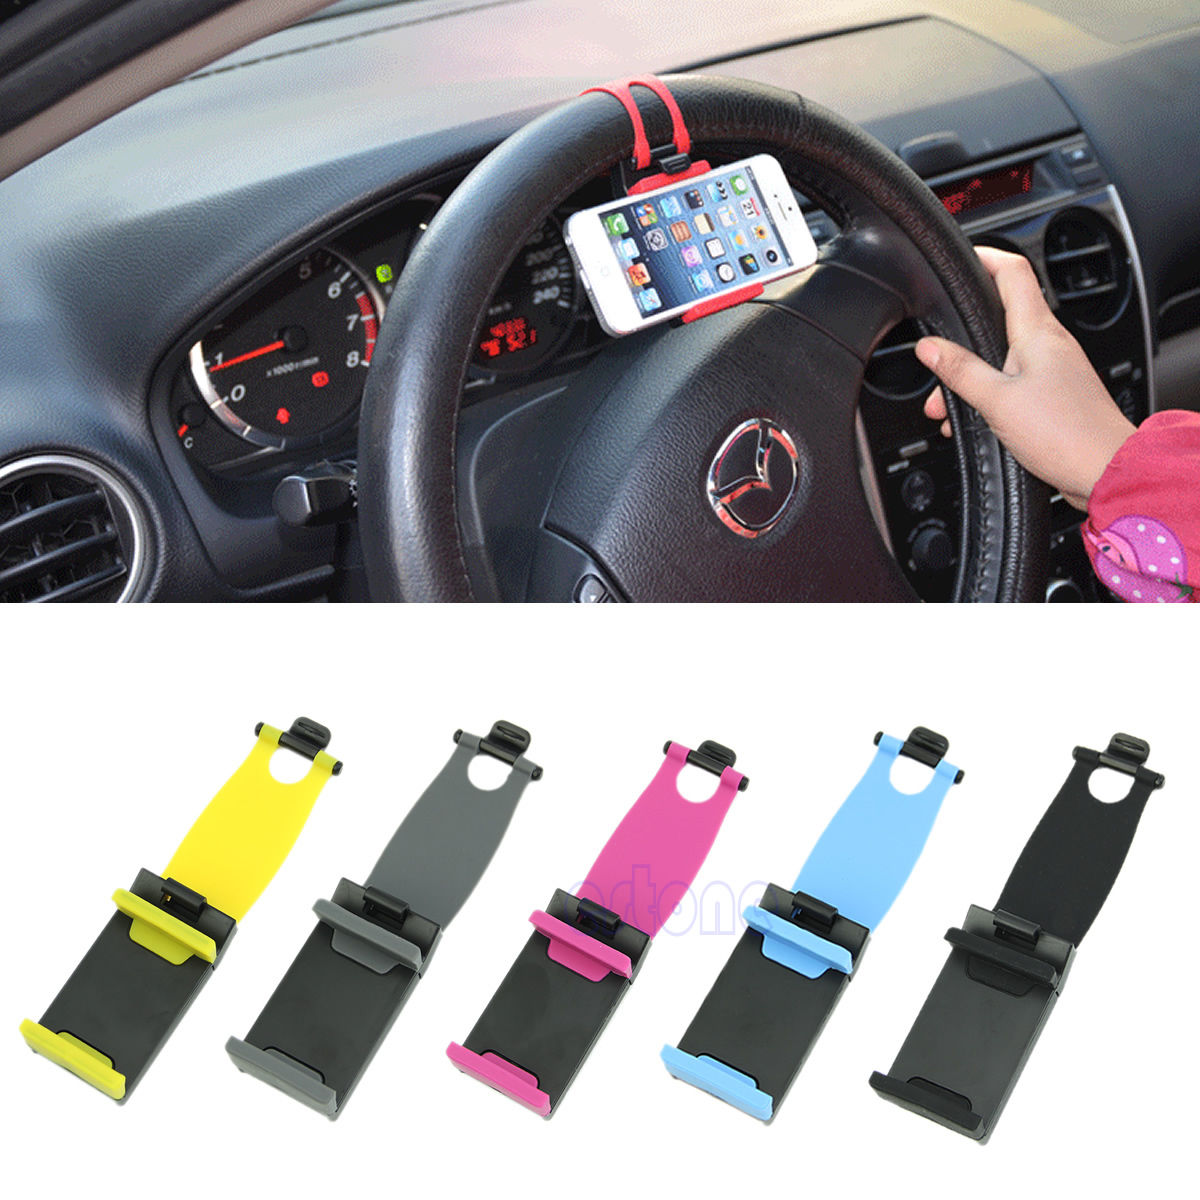 universal car steering wheel bike clip mount holder for iphone phone samsung cellphone gps. Black Bedroom Furniture Sets. Home Design Ideas